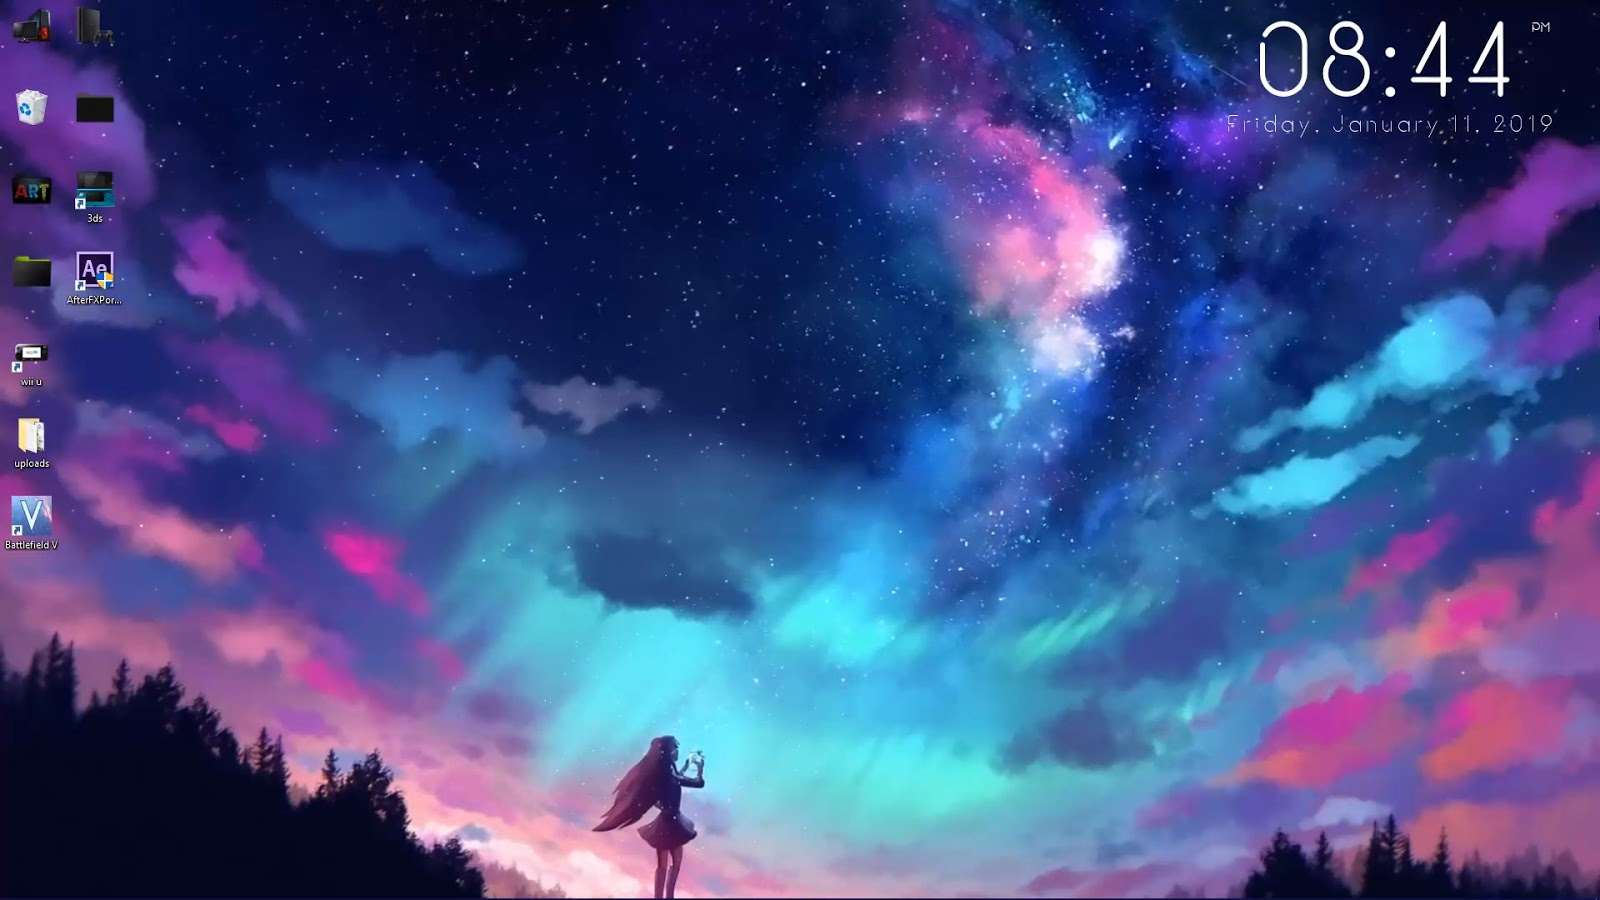 Anime Sky 2323322 Hd Wallpaper Backgrounds Download